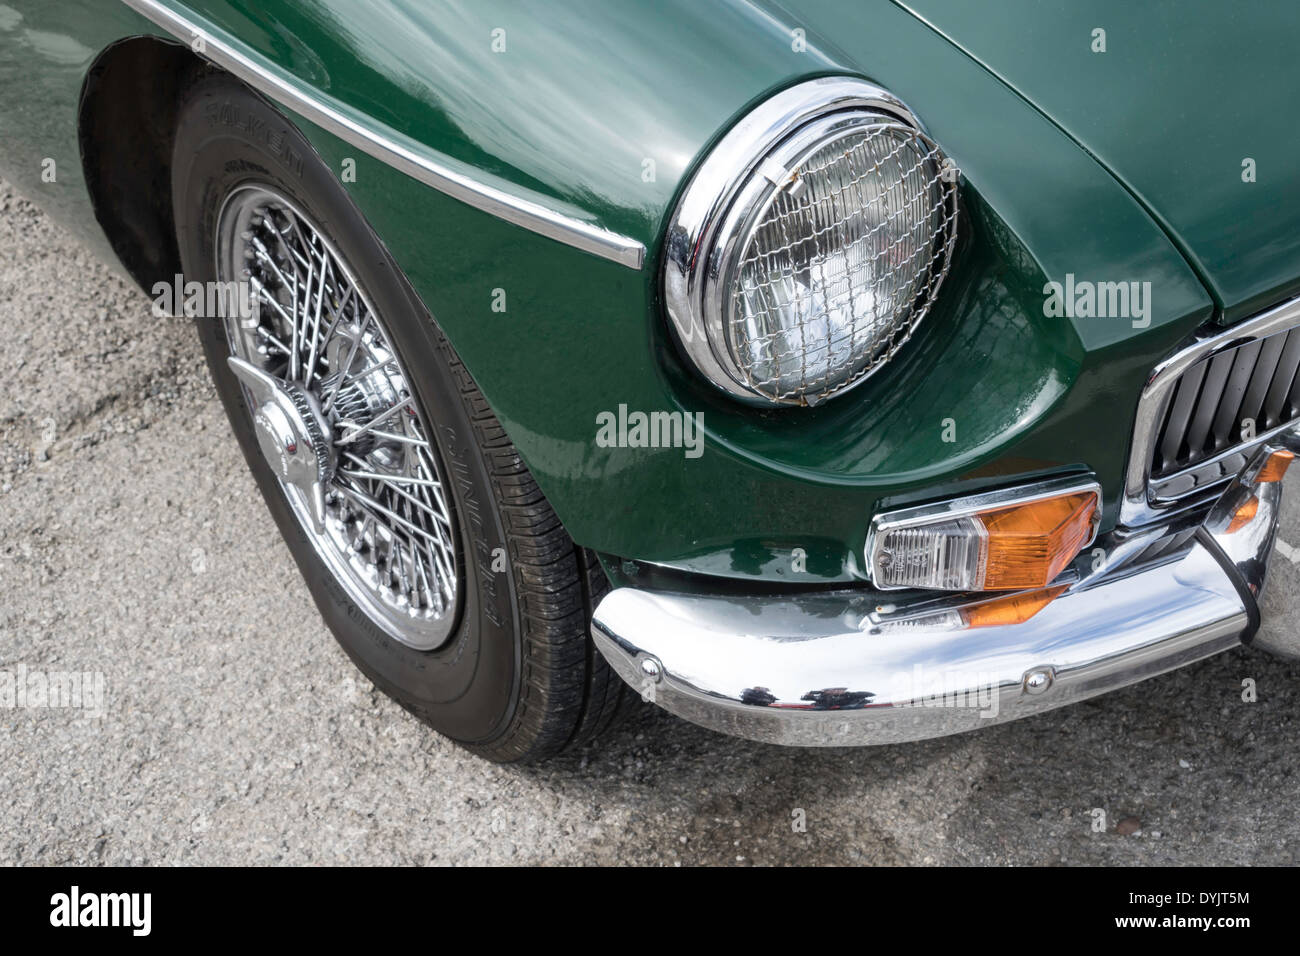 Front wing detail classic British Racing Green 1966 MG-B roadster sports car showing stone guard on headlamp and wire wheel - Stock Image